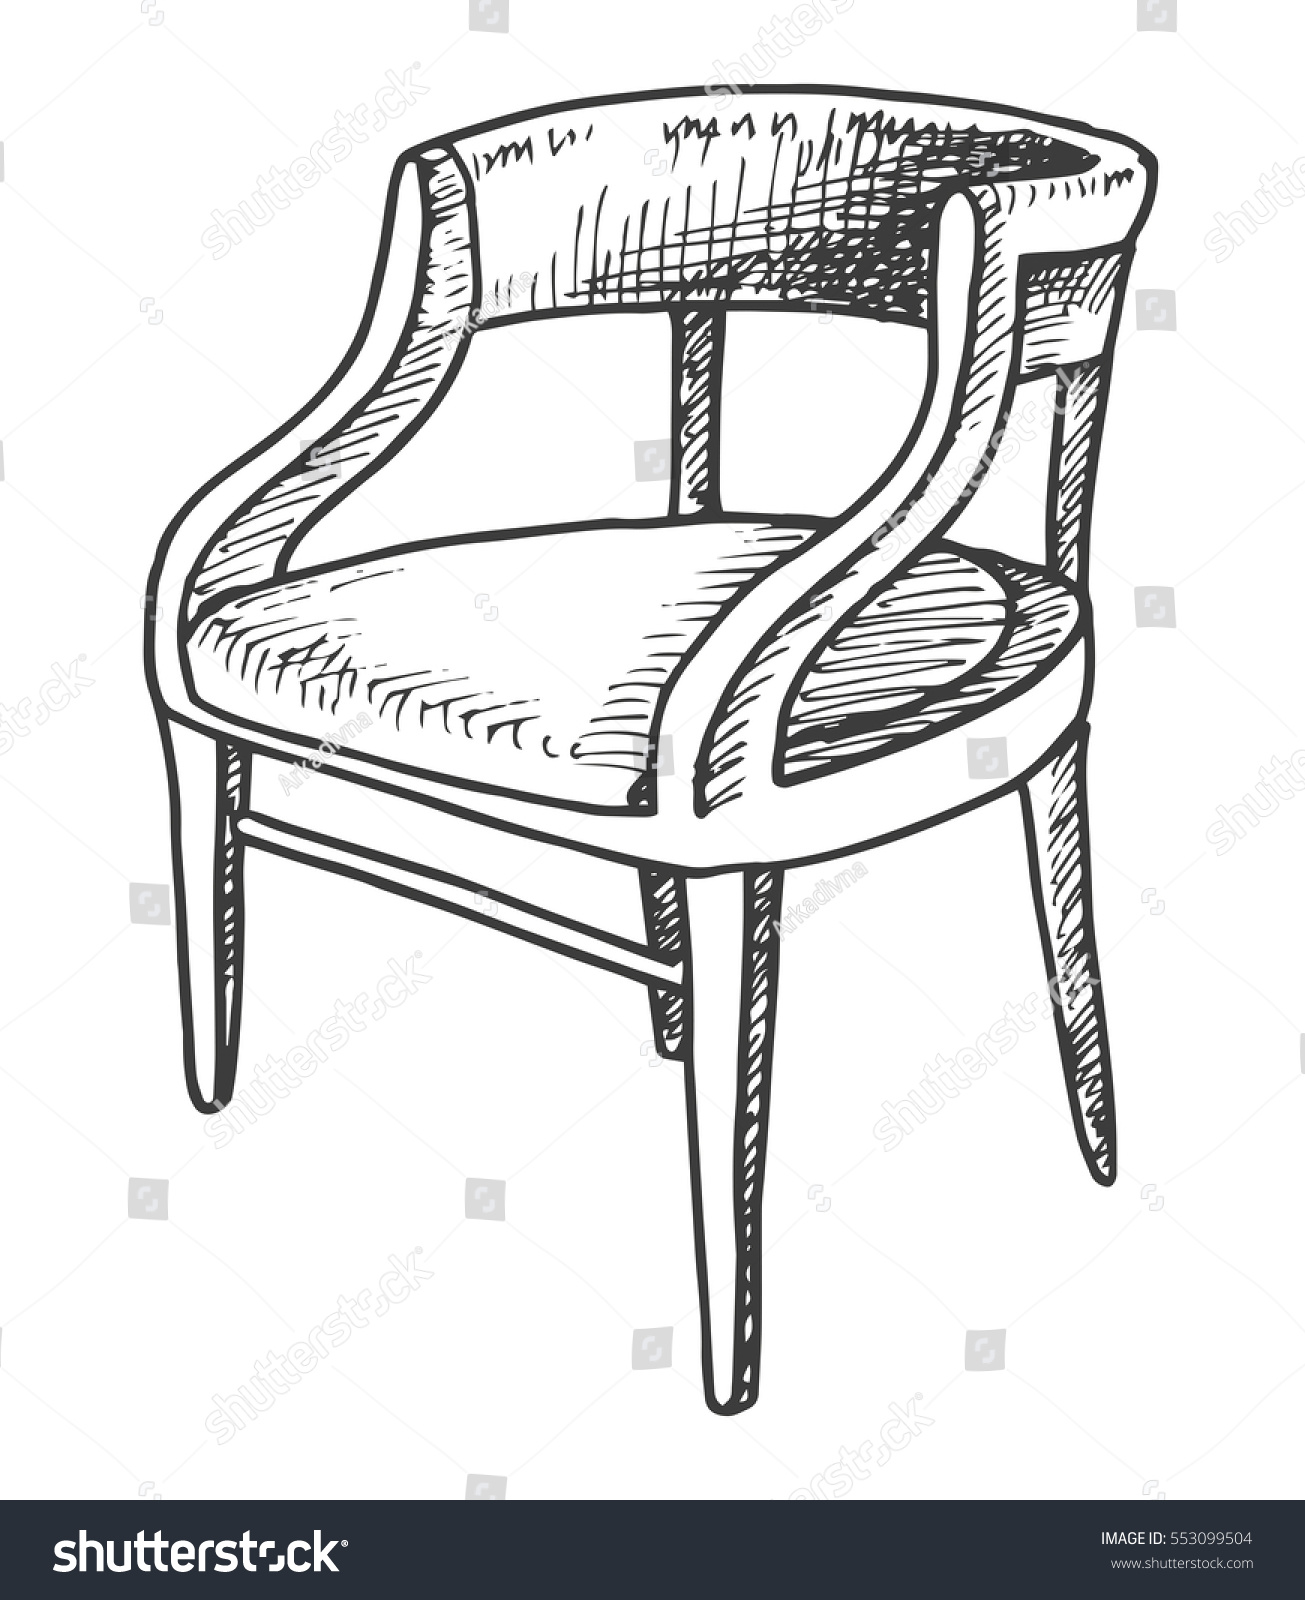 Chair Sketch chair sketch isolated on white background stock vector 553099504